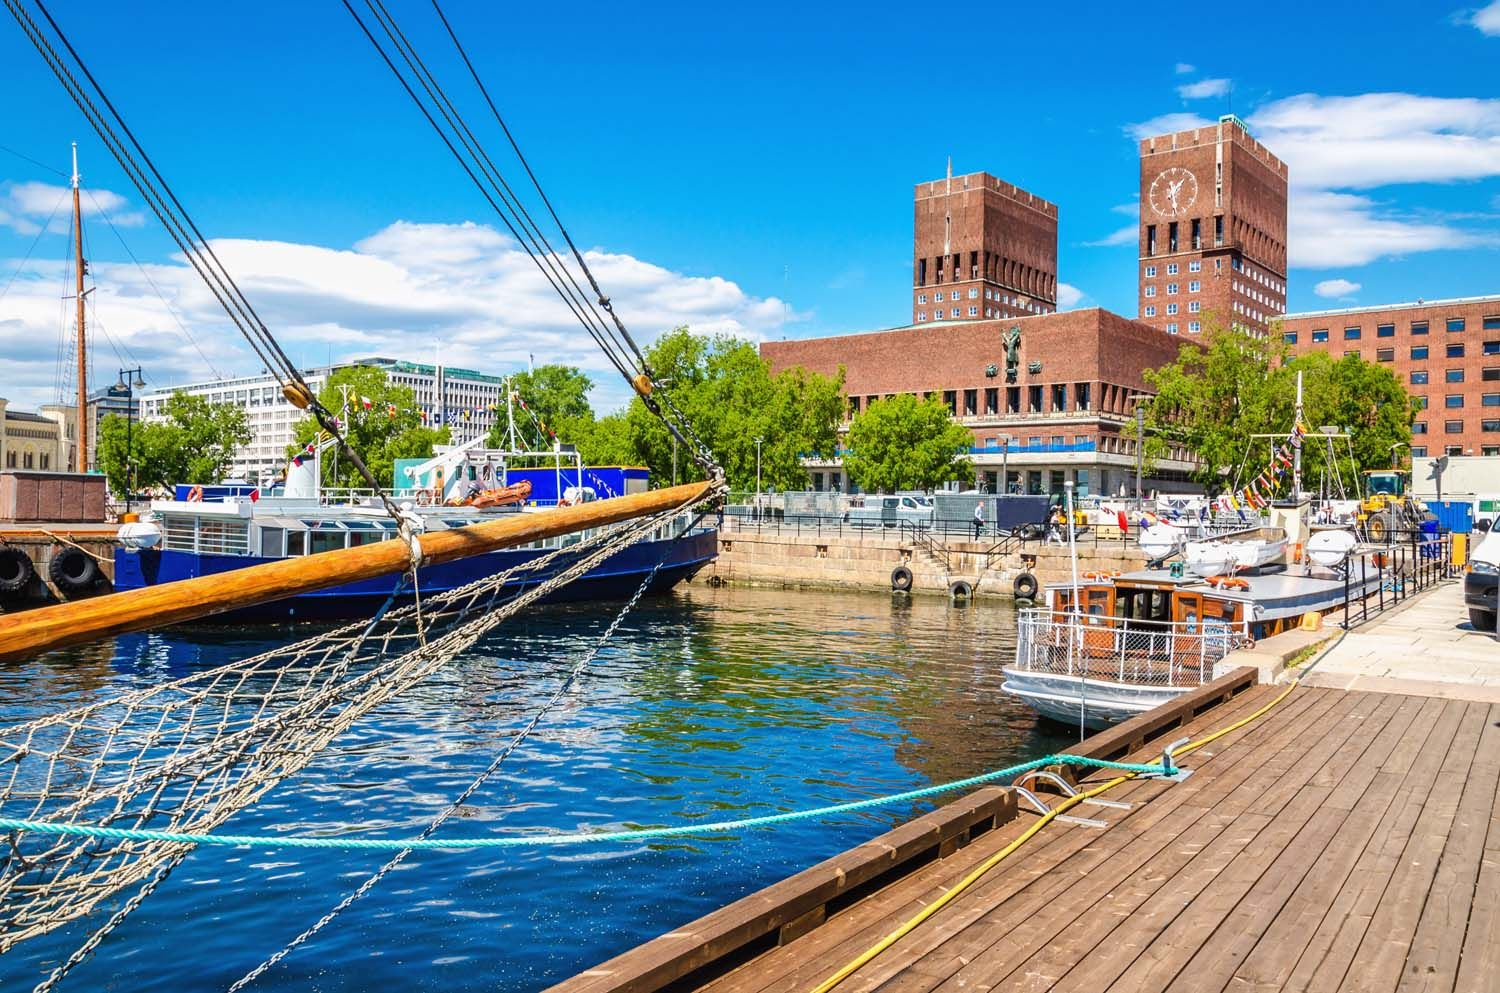 Some travellers are put off Norway due to its expensive reputation, but Oslo is a city that should be experienced. Here's how to do it on a tight budget.